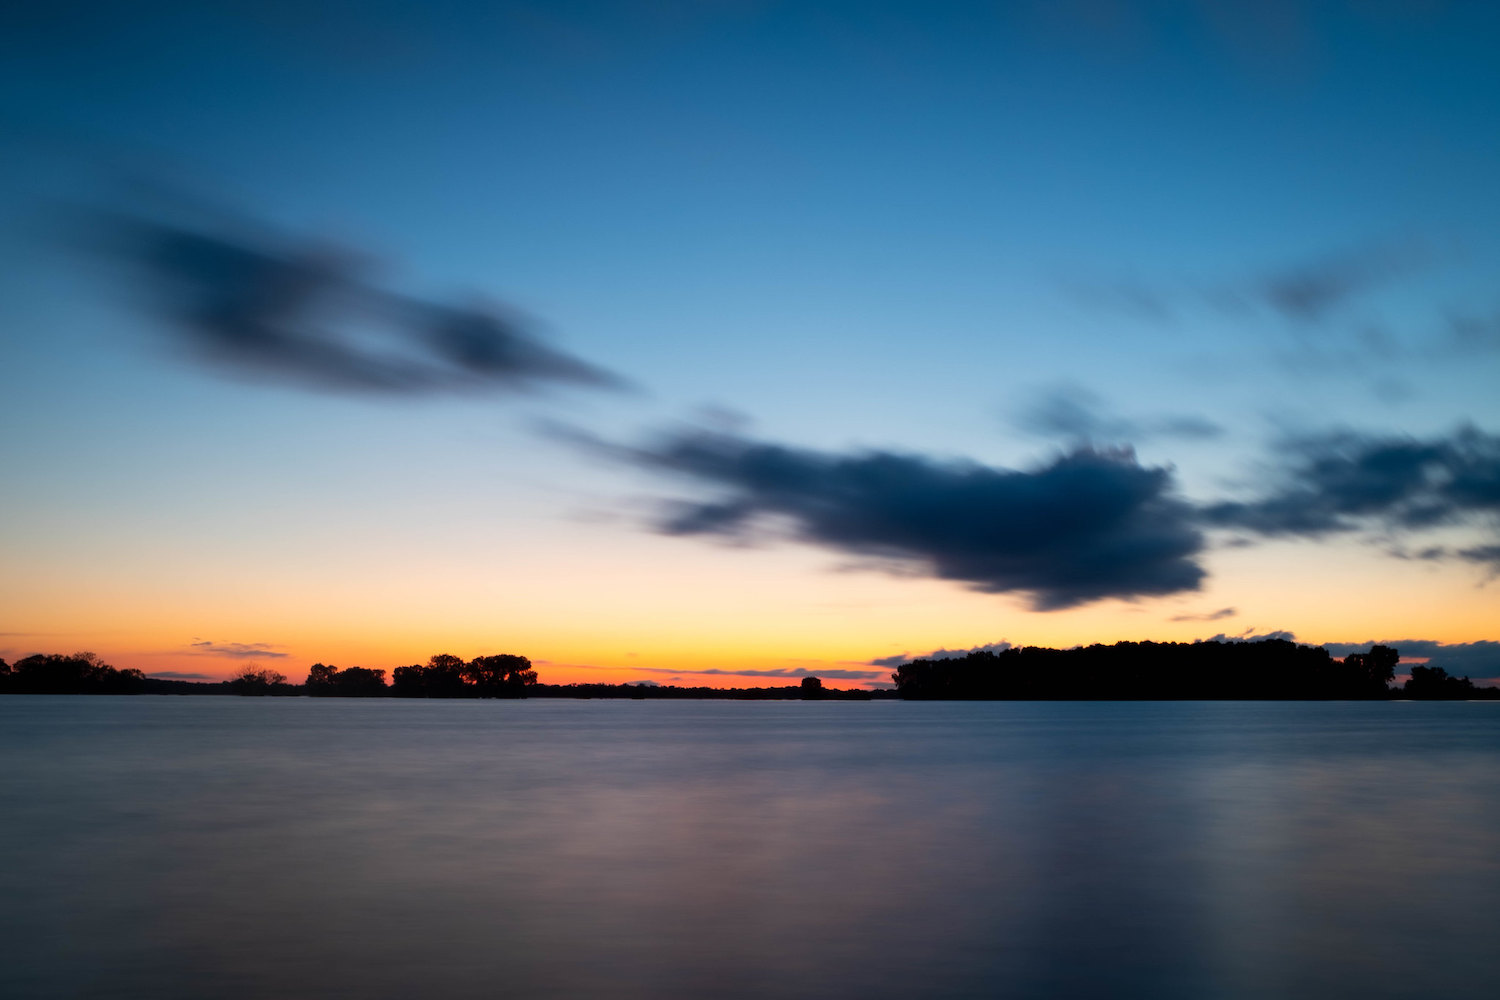 long exposure sunset with ND filter